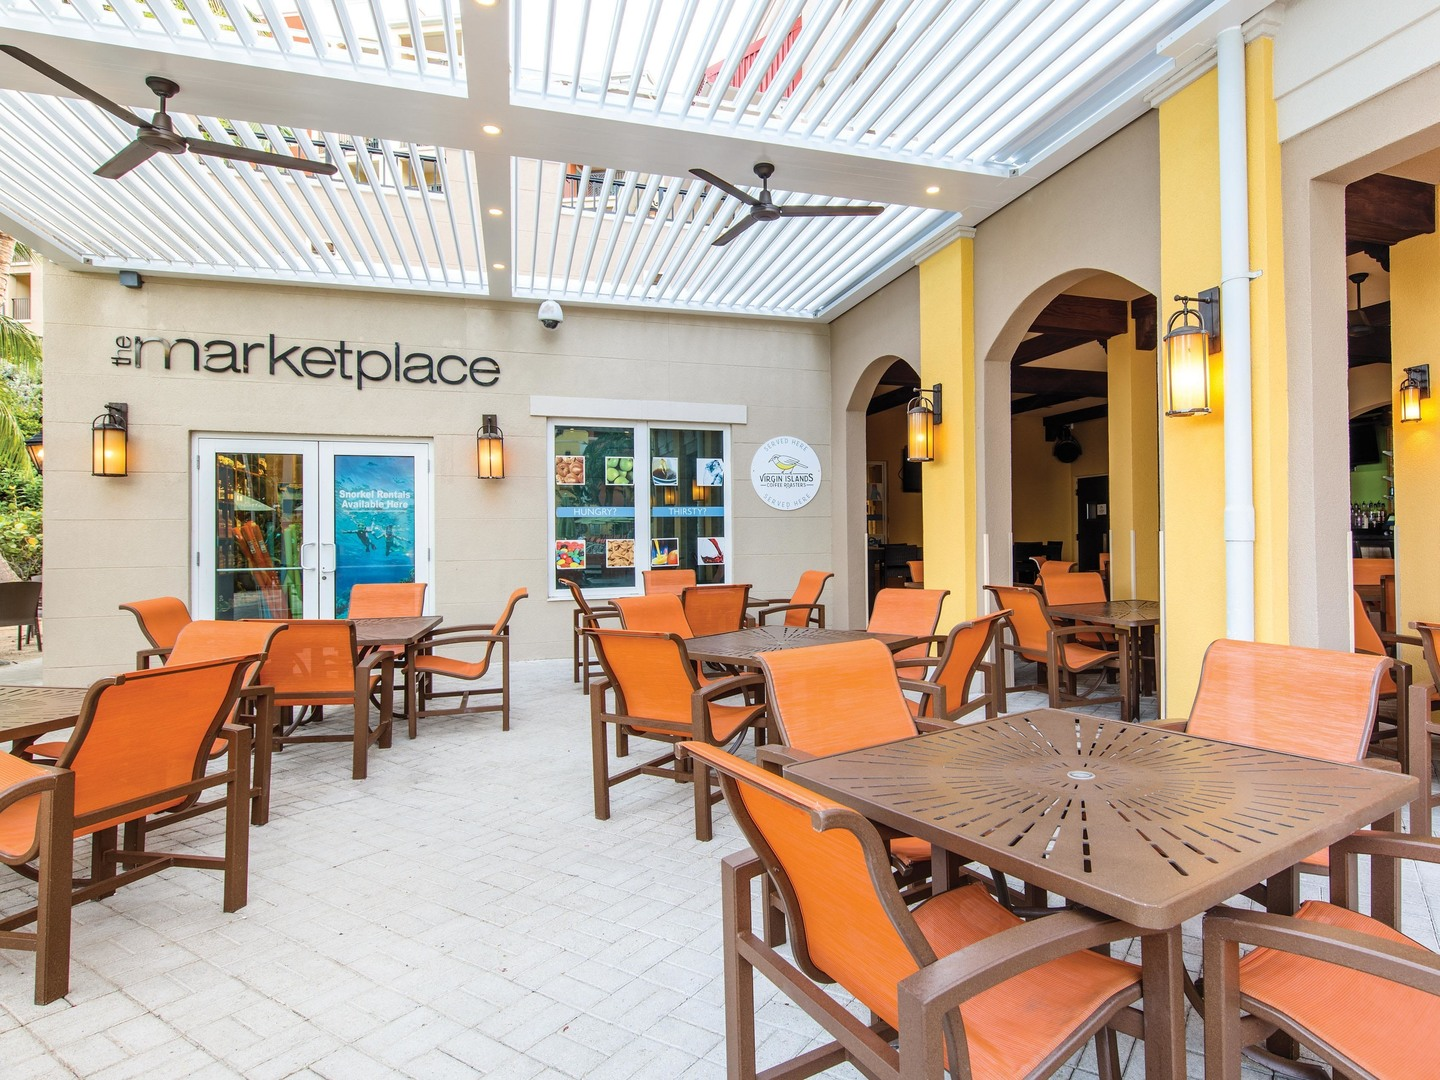 Marriott's Frenchman's Cove Marketplace. Marriott's Frenchman's Cove is located in St. Thomas, US Virgin Islands United States.